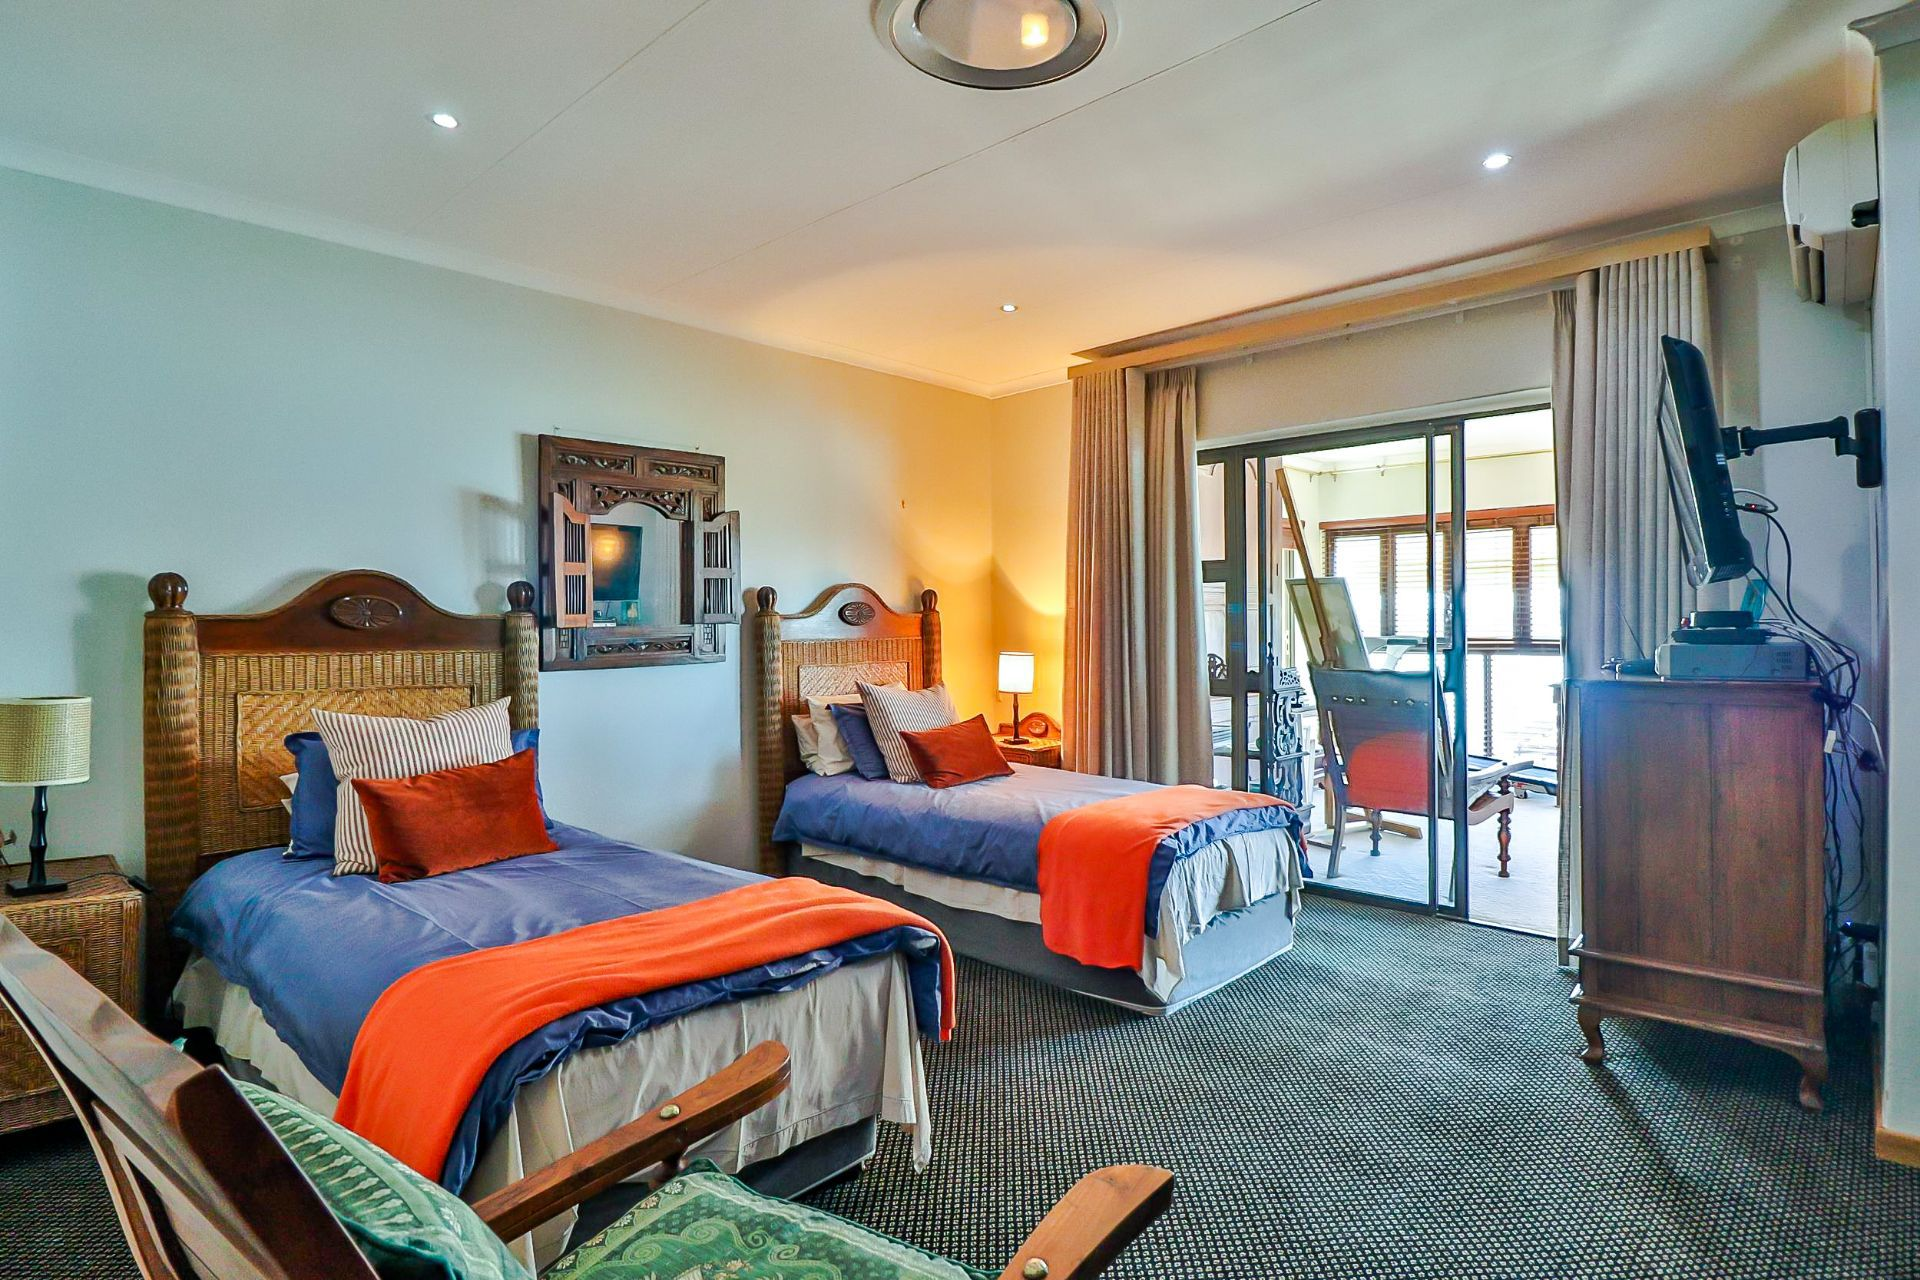 House in Kosmos Village - This bedroom is spacious, wheelchair friendly and has an enclosed patio which leads on to an open balcony